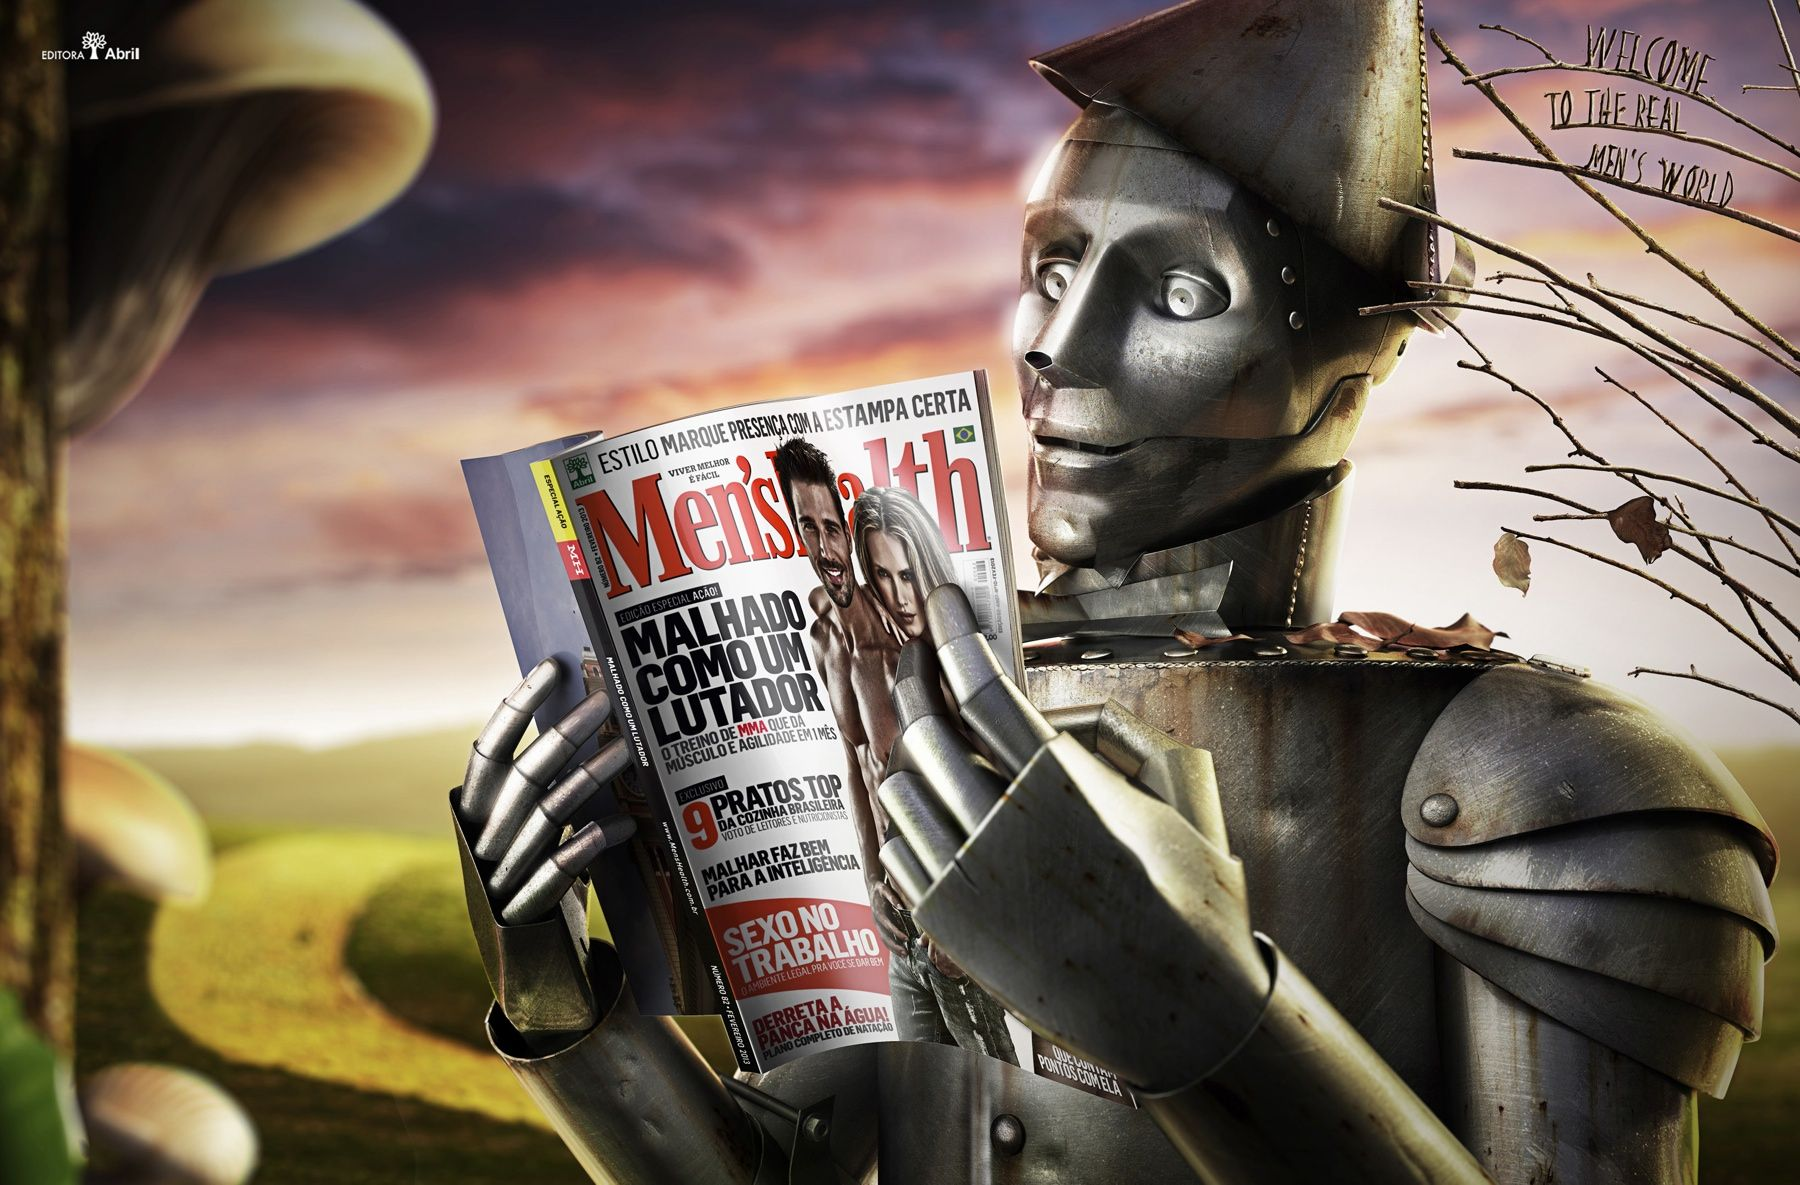 Men's Health: Real Men's world, Tin Man